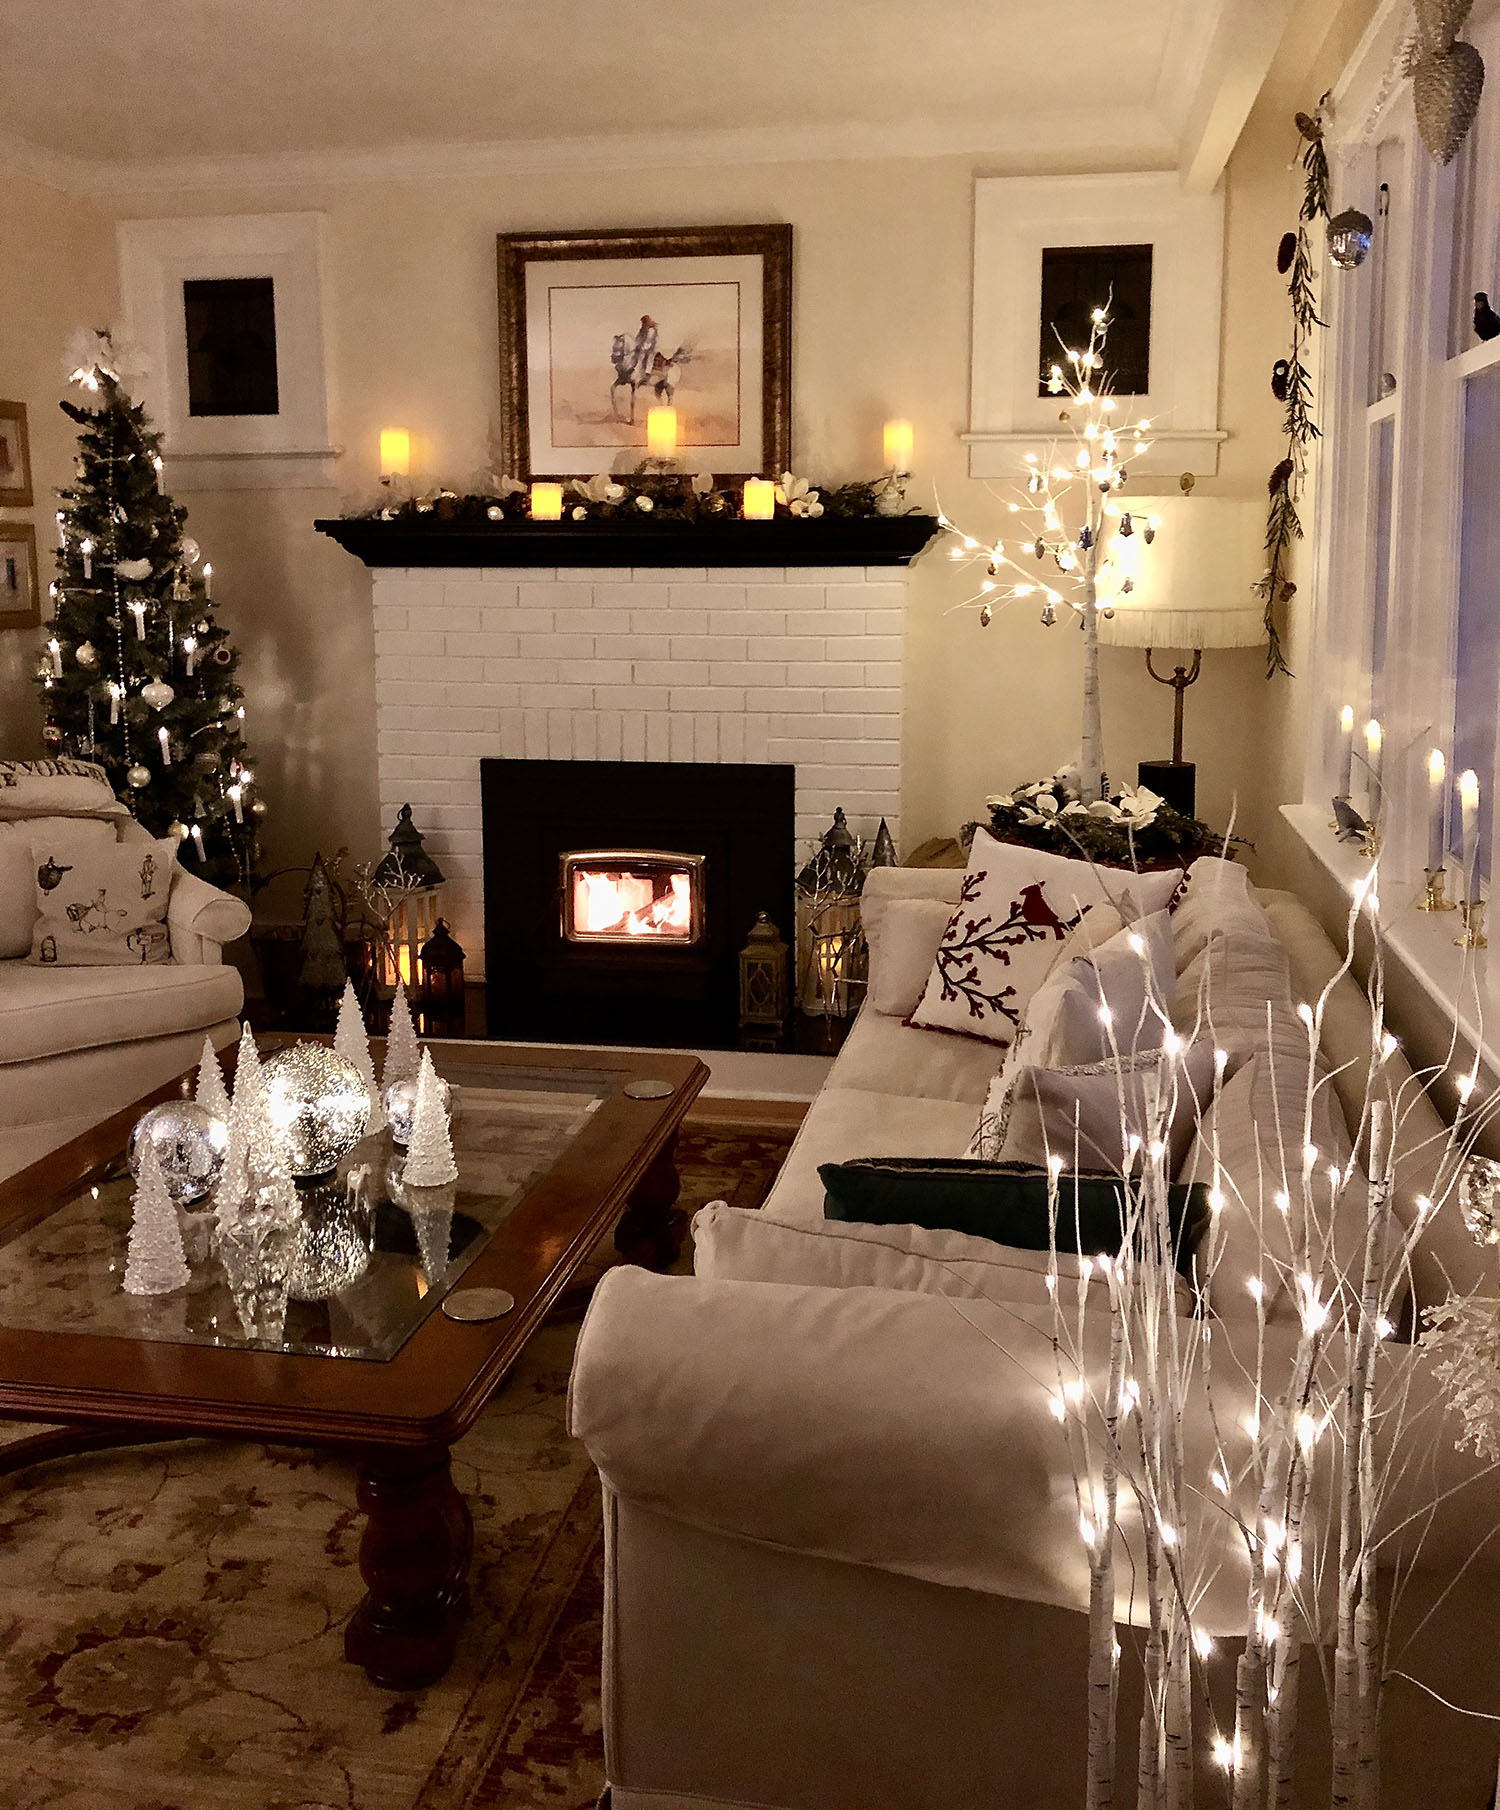 Beautiful Home decorated for Christmas with a Christmas tree, fireplace garland and lights